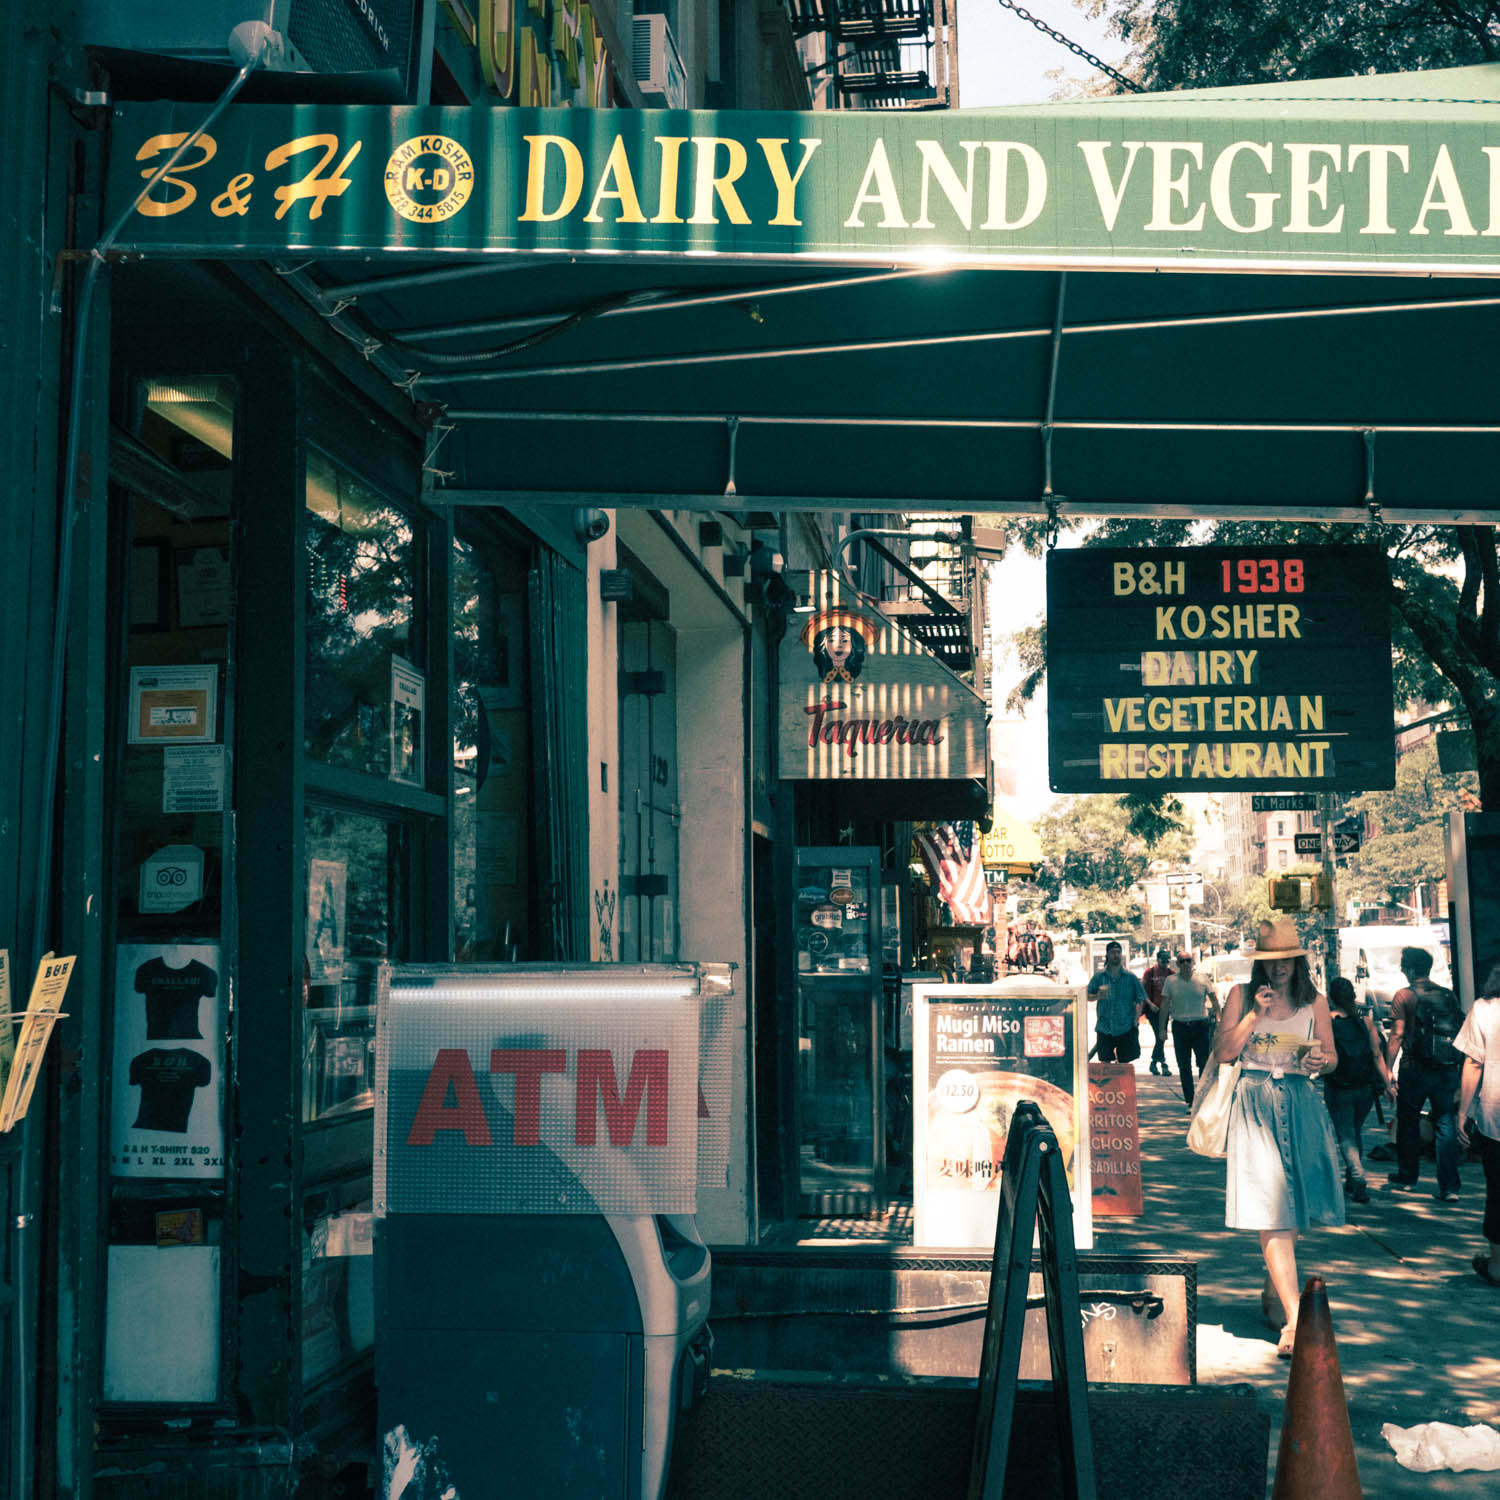 B&H Dairy and Vegetarian